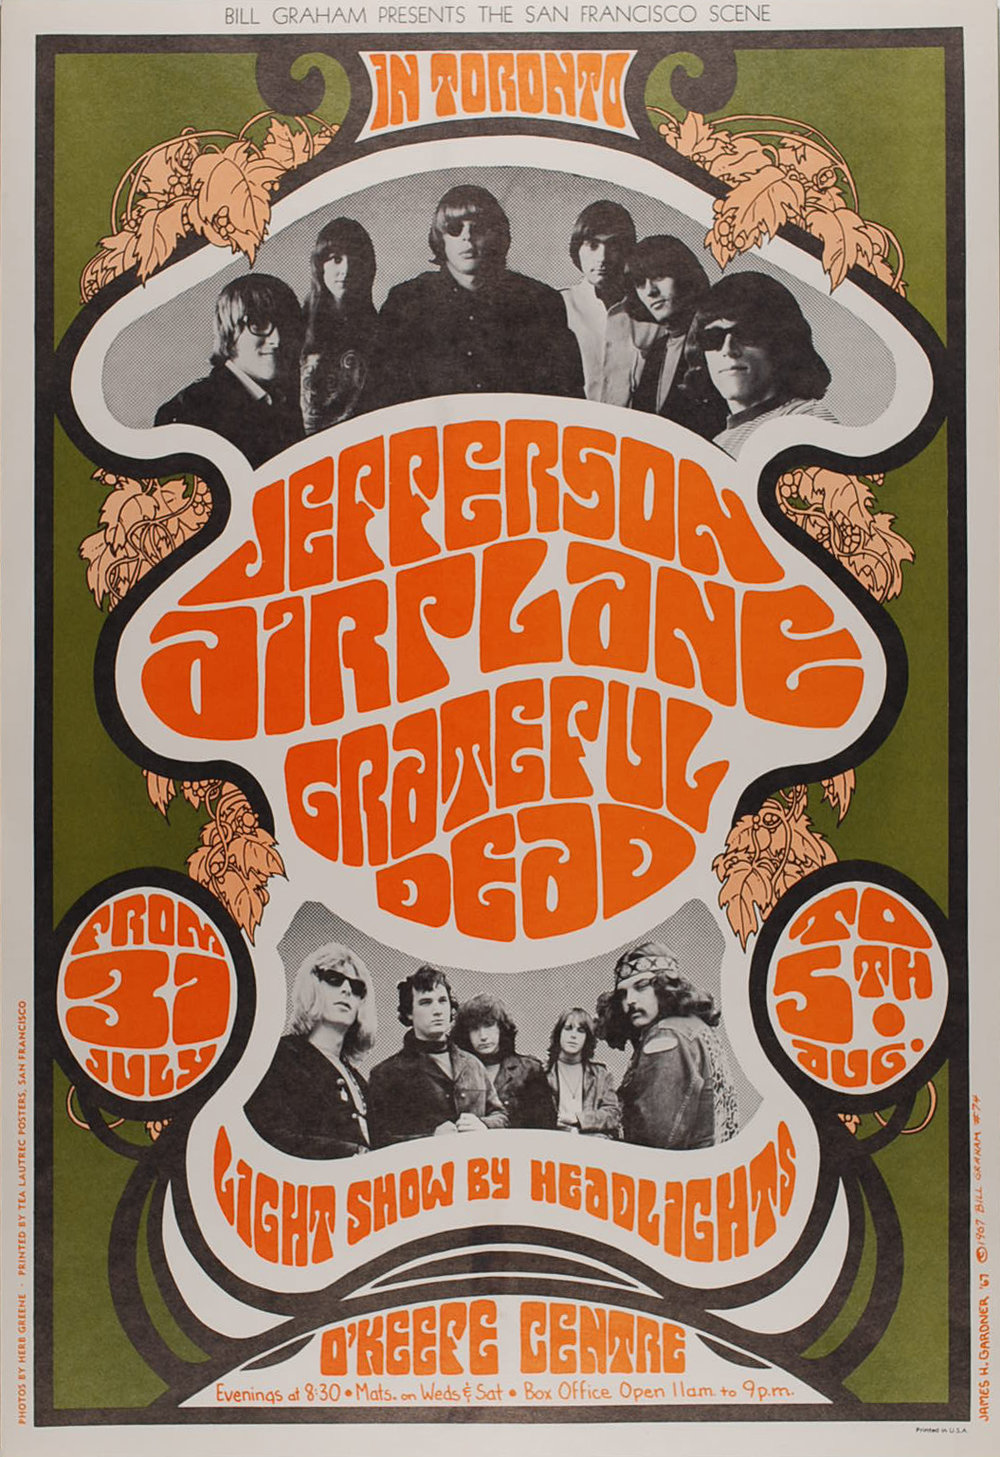 Jefferson Airplane O'Keefe Centre Toronto 7/31 – 8/5/67